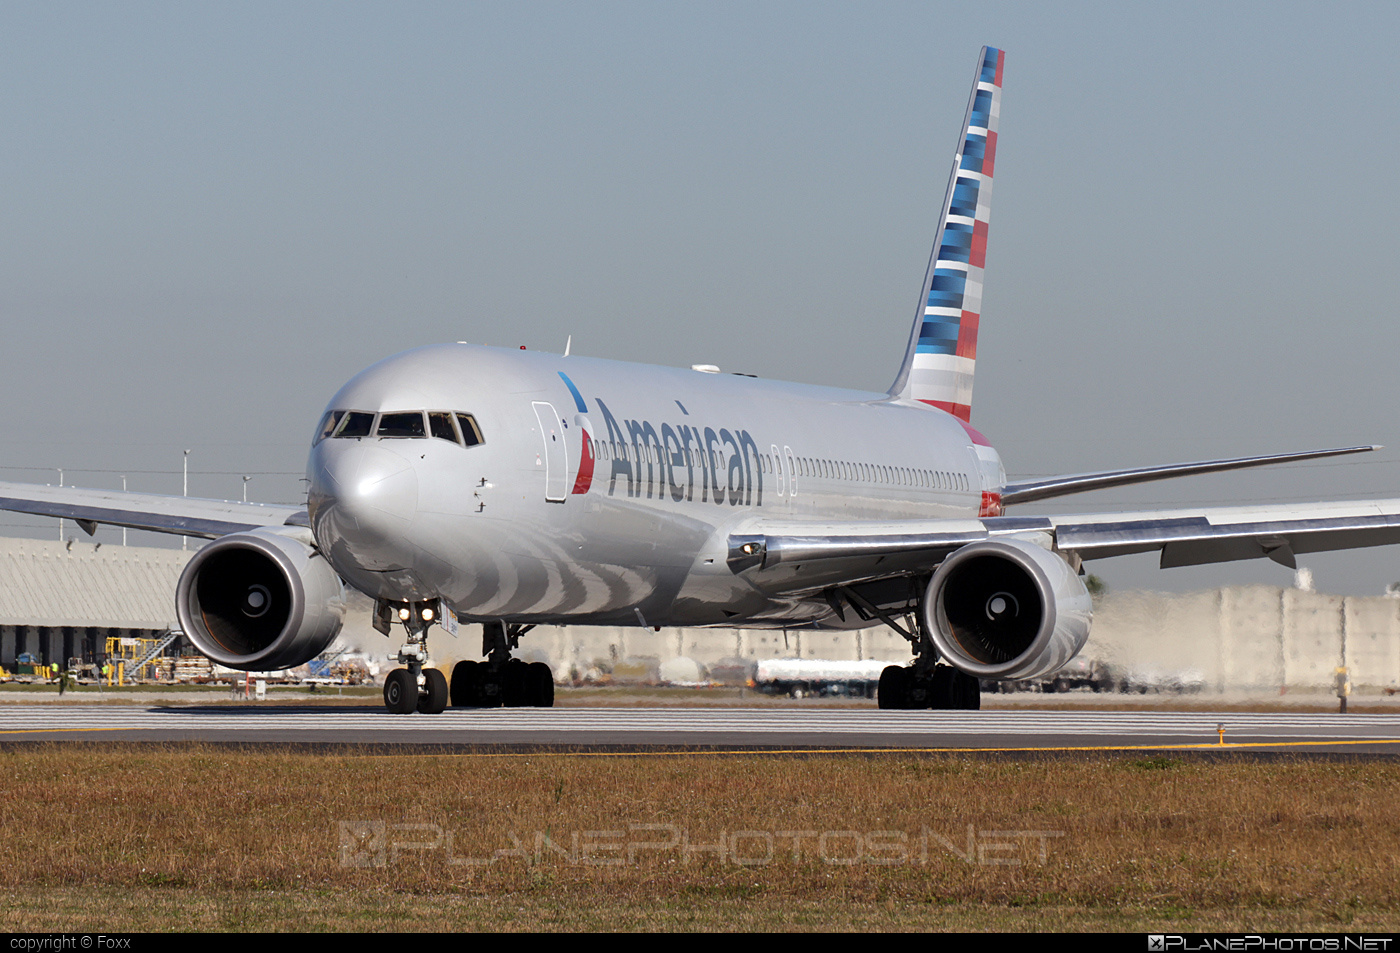 Boeing 767-300ER - N389AA operated by American Airlines #americanairlines #b767 #b767er #boeing #boeing767